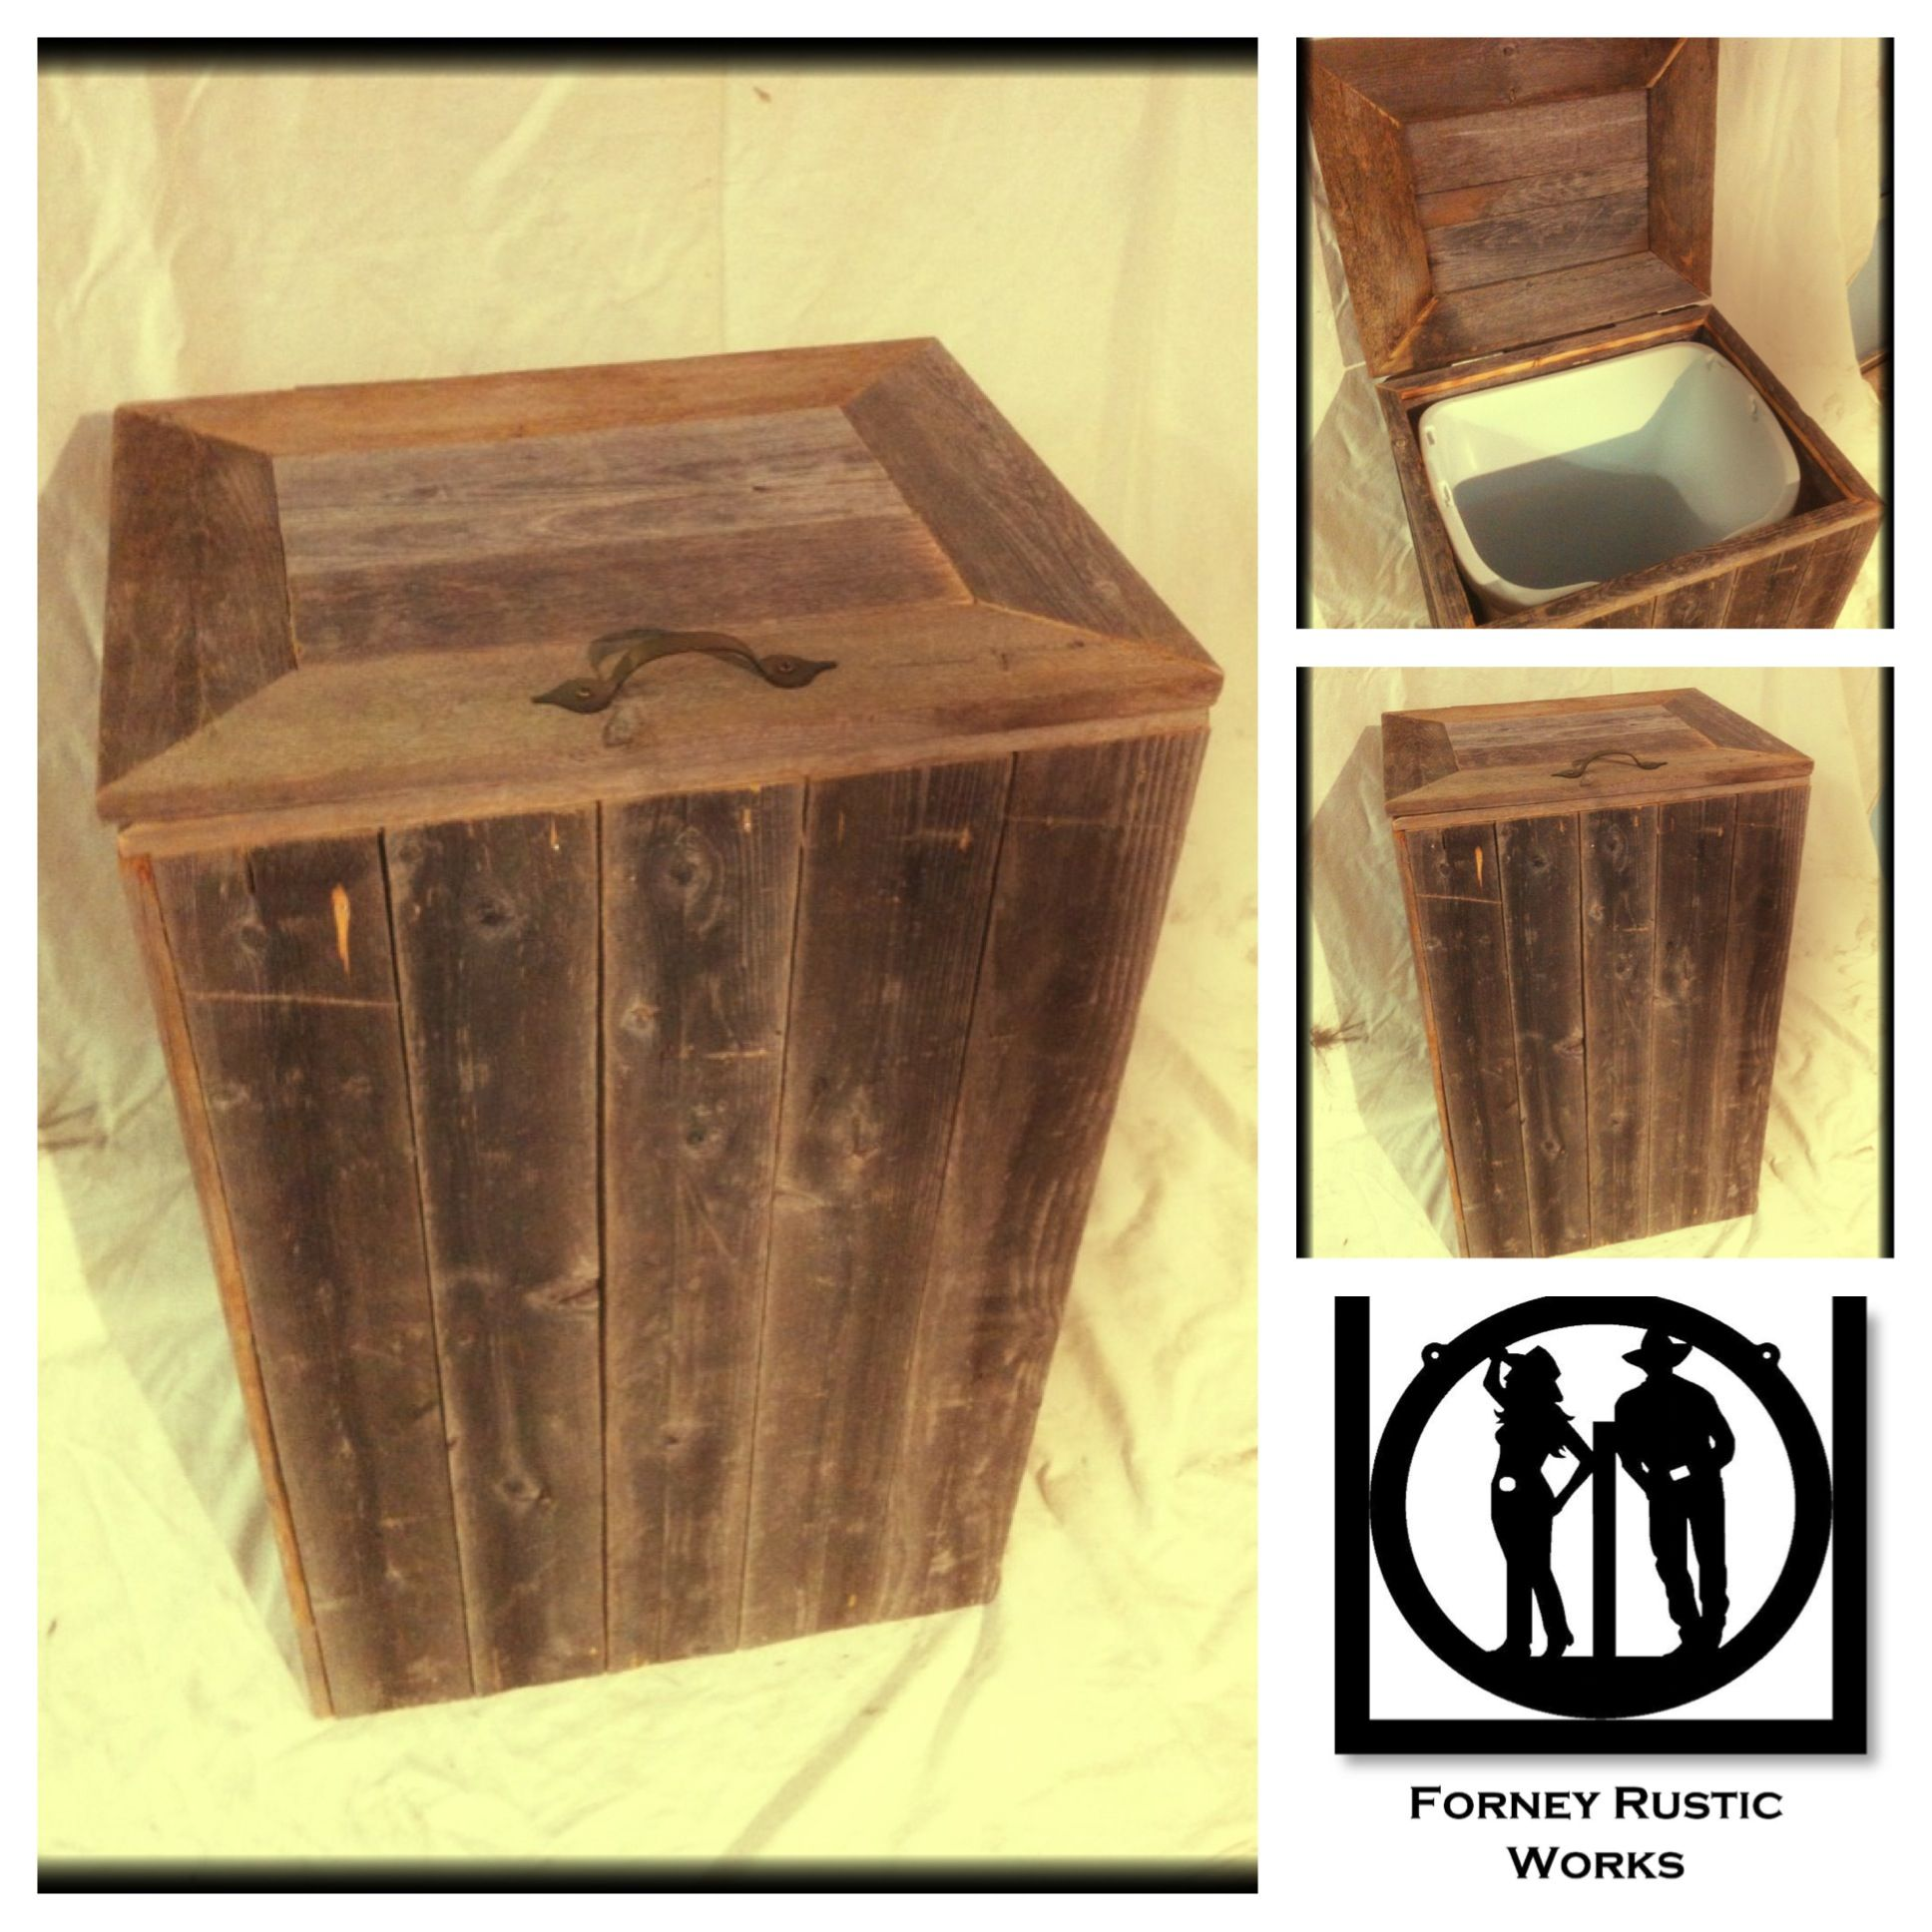 Forney Rustic Works Wooden Trash Can Wood Trash Can Trash Bins